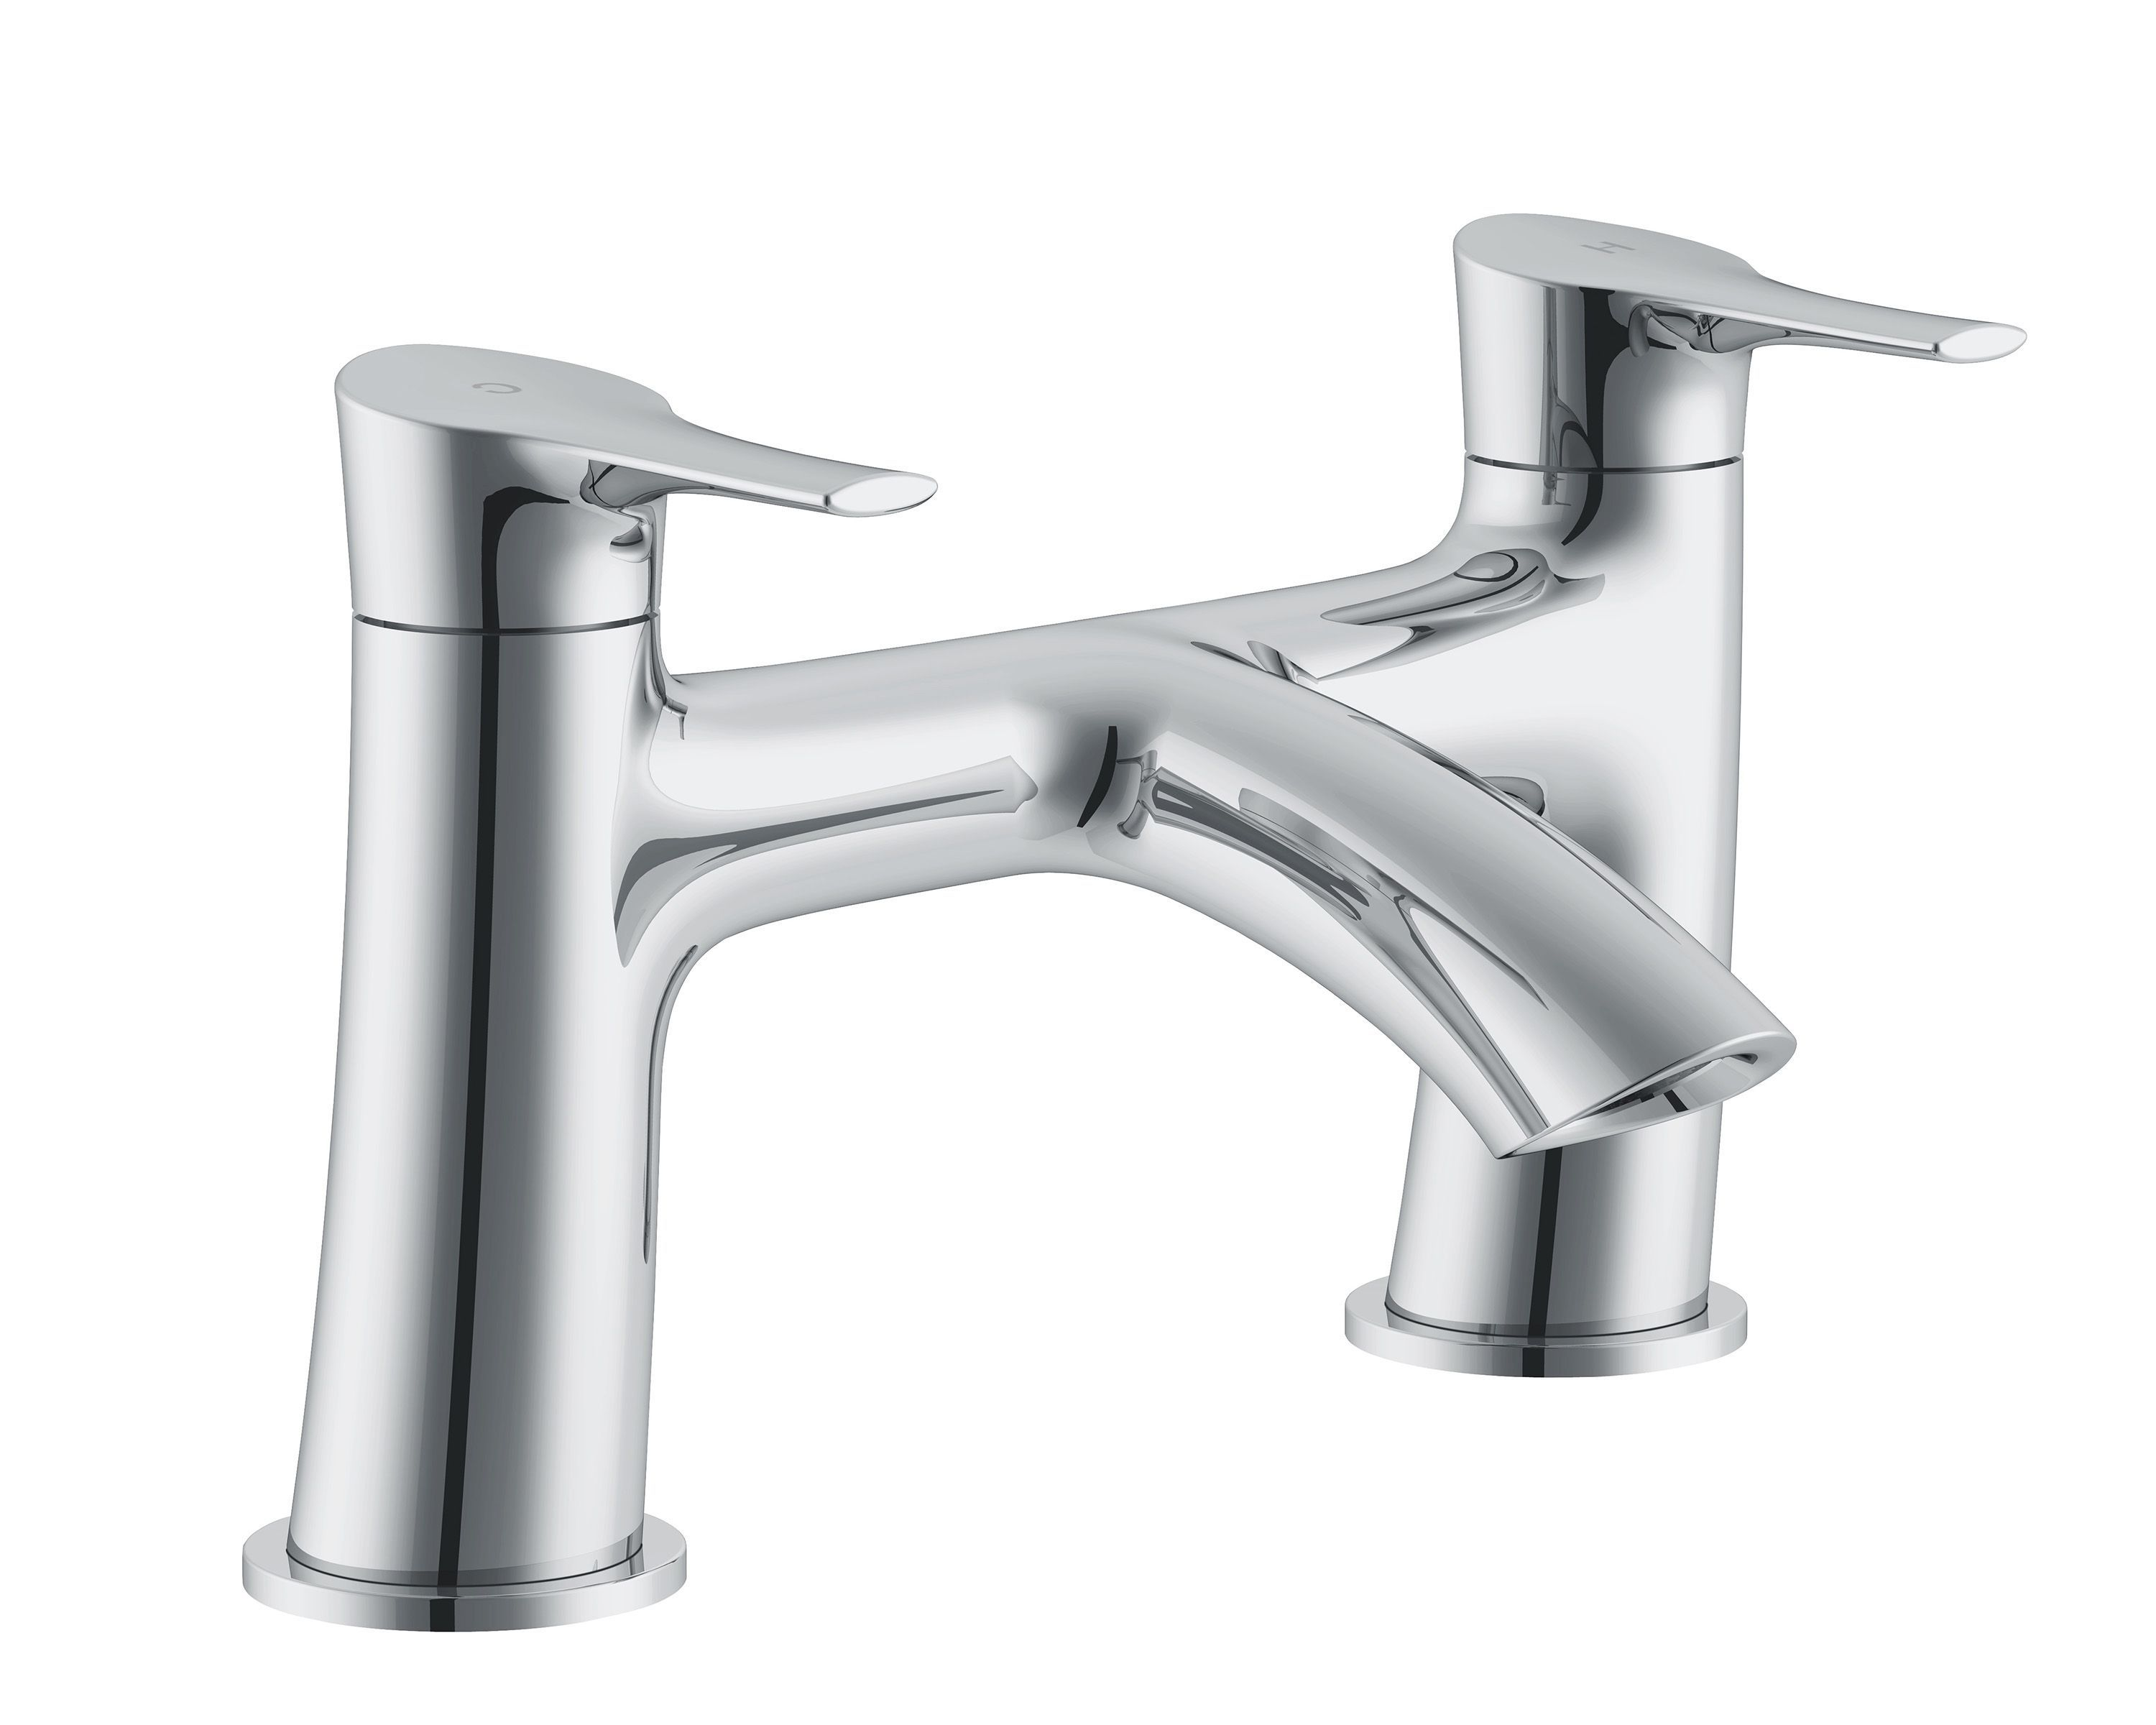 Cooke & Lewis Oceanspray Chrome finish Bath mixer tap ...